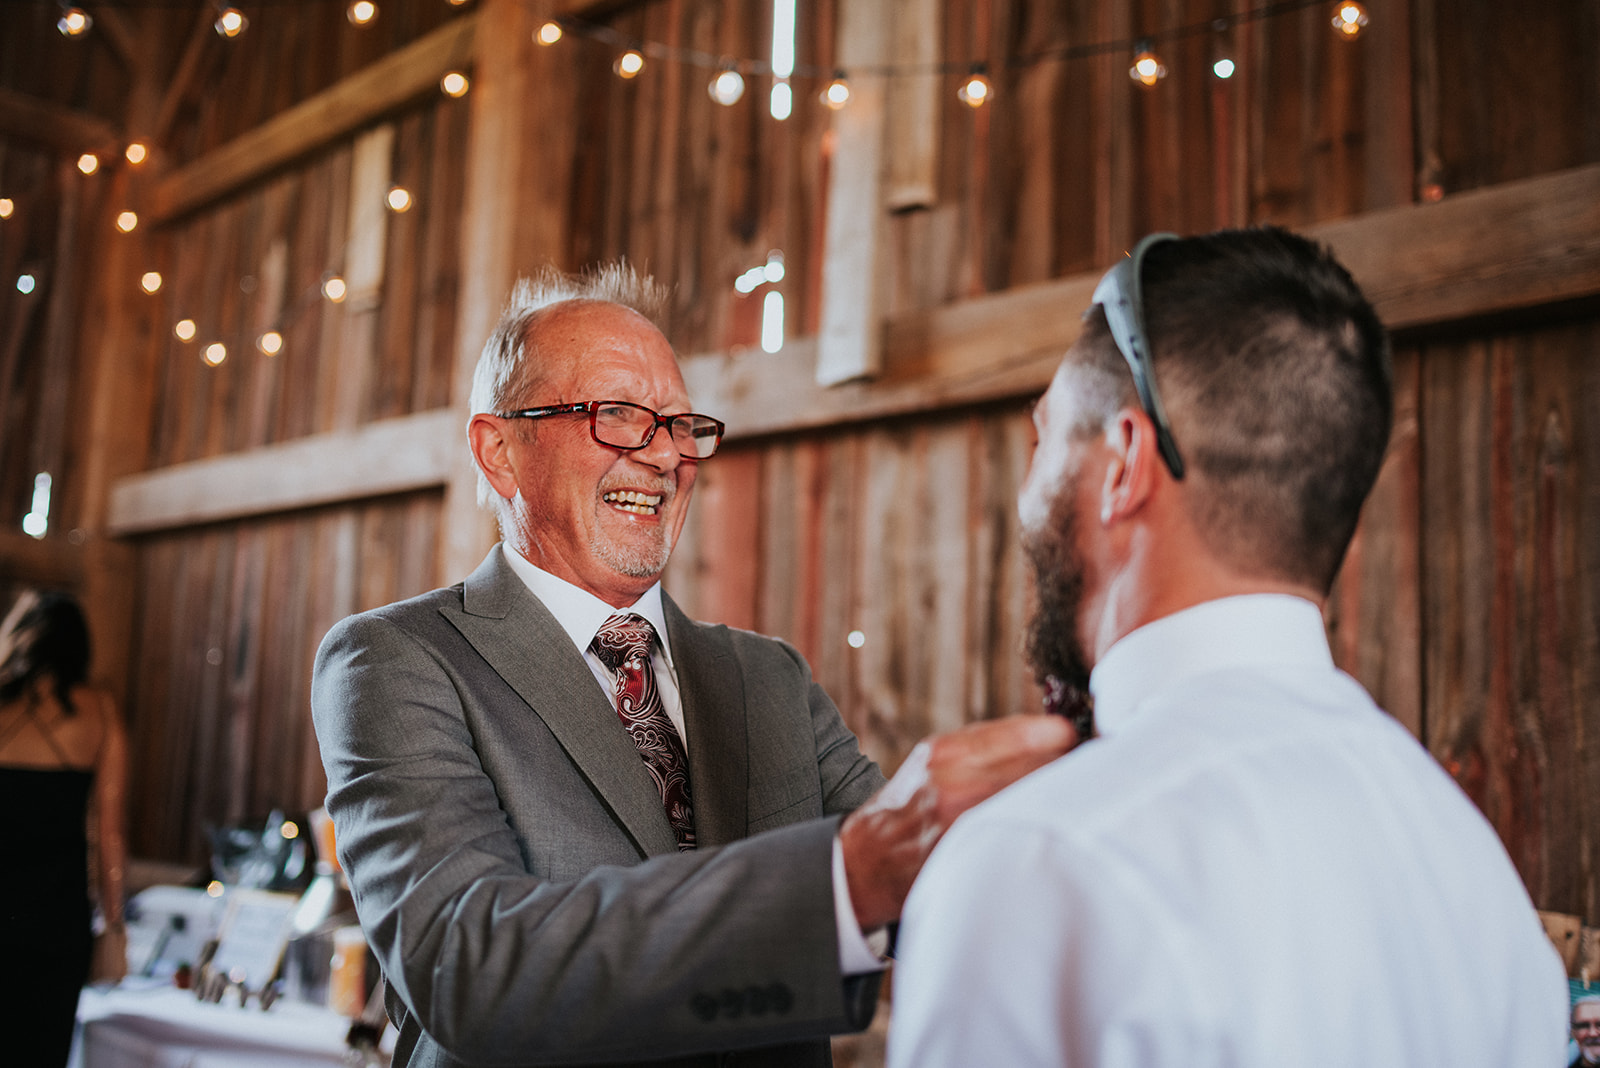 overthevineswisconsinwedding_0428.jpg